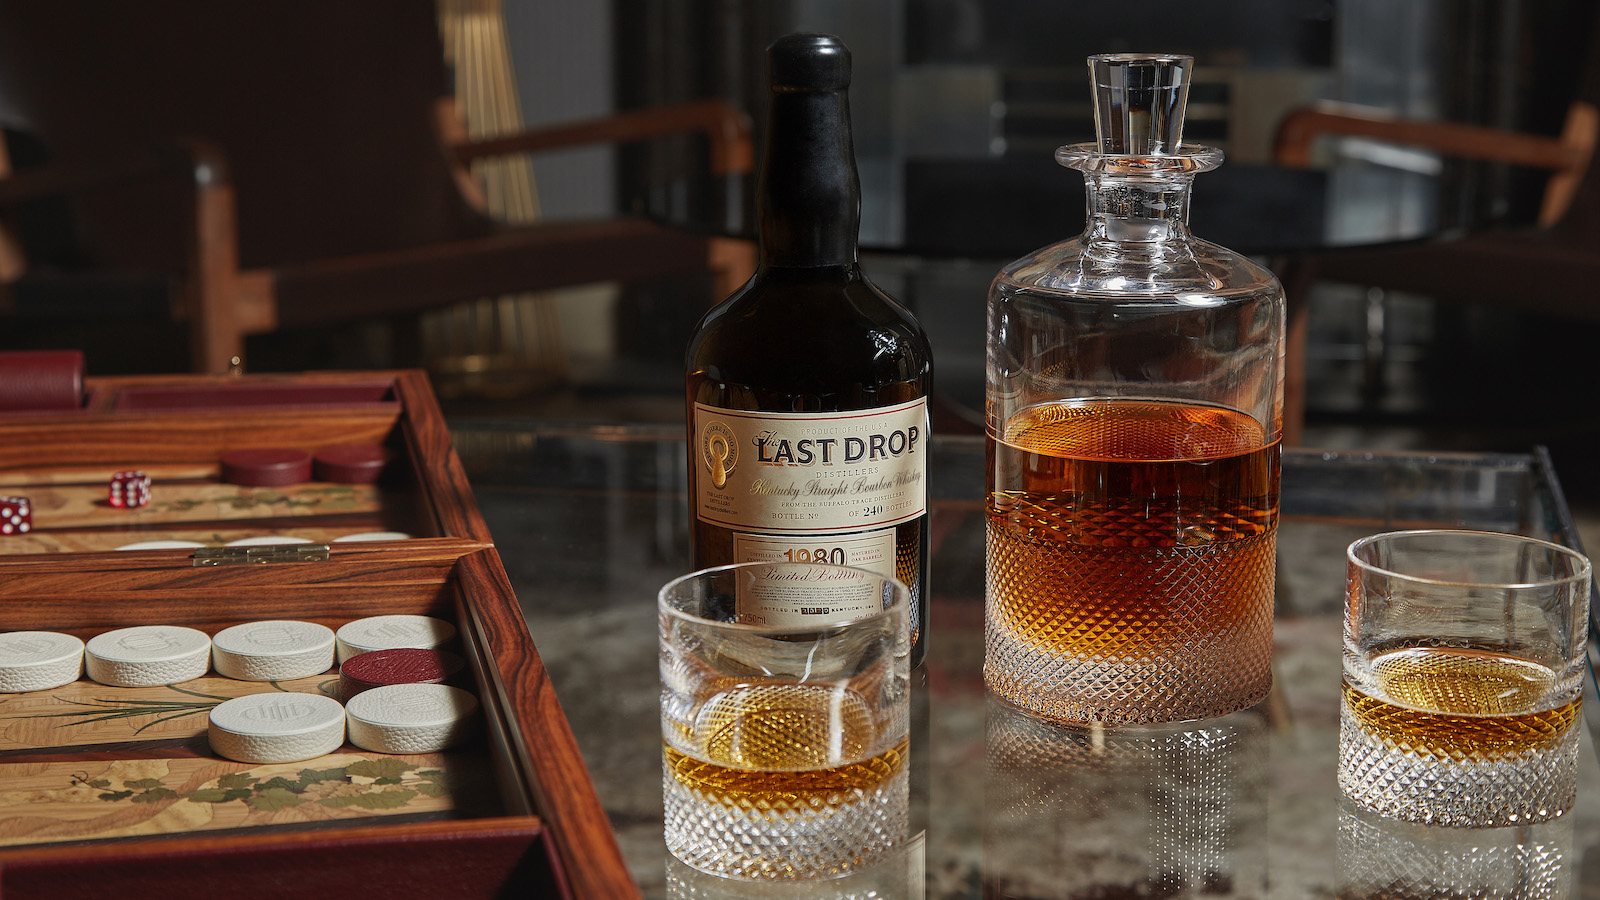 20 Year Old Buffalo Trace, Bruichladdich Black Art & More New Whisky [Essential Info]